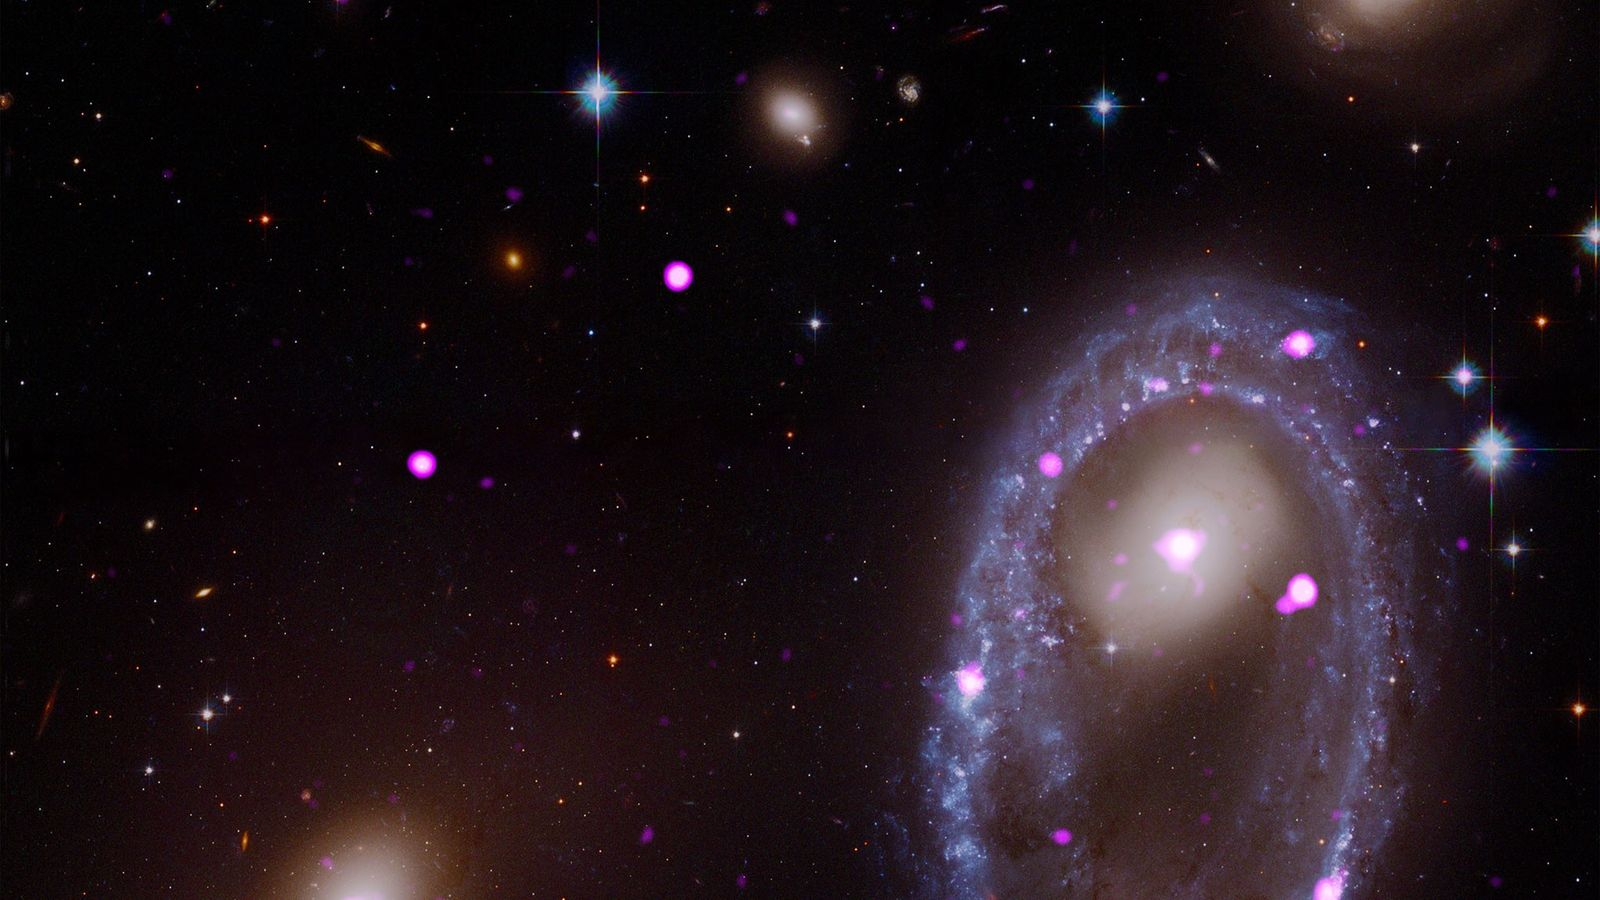 A composite image from the Hubble and Chandra space telescopes shows the ring galaxy known as ...